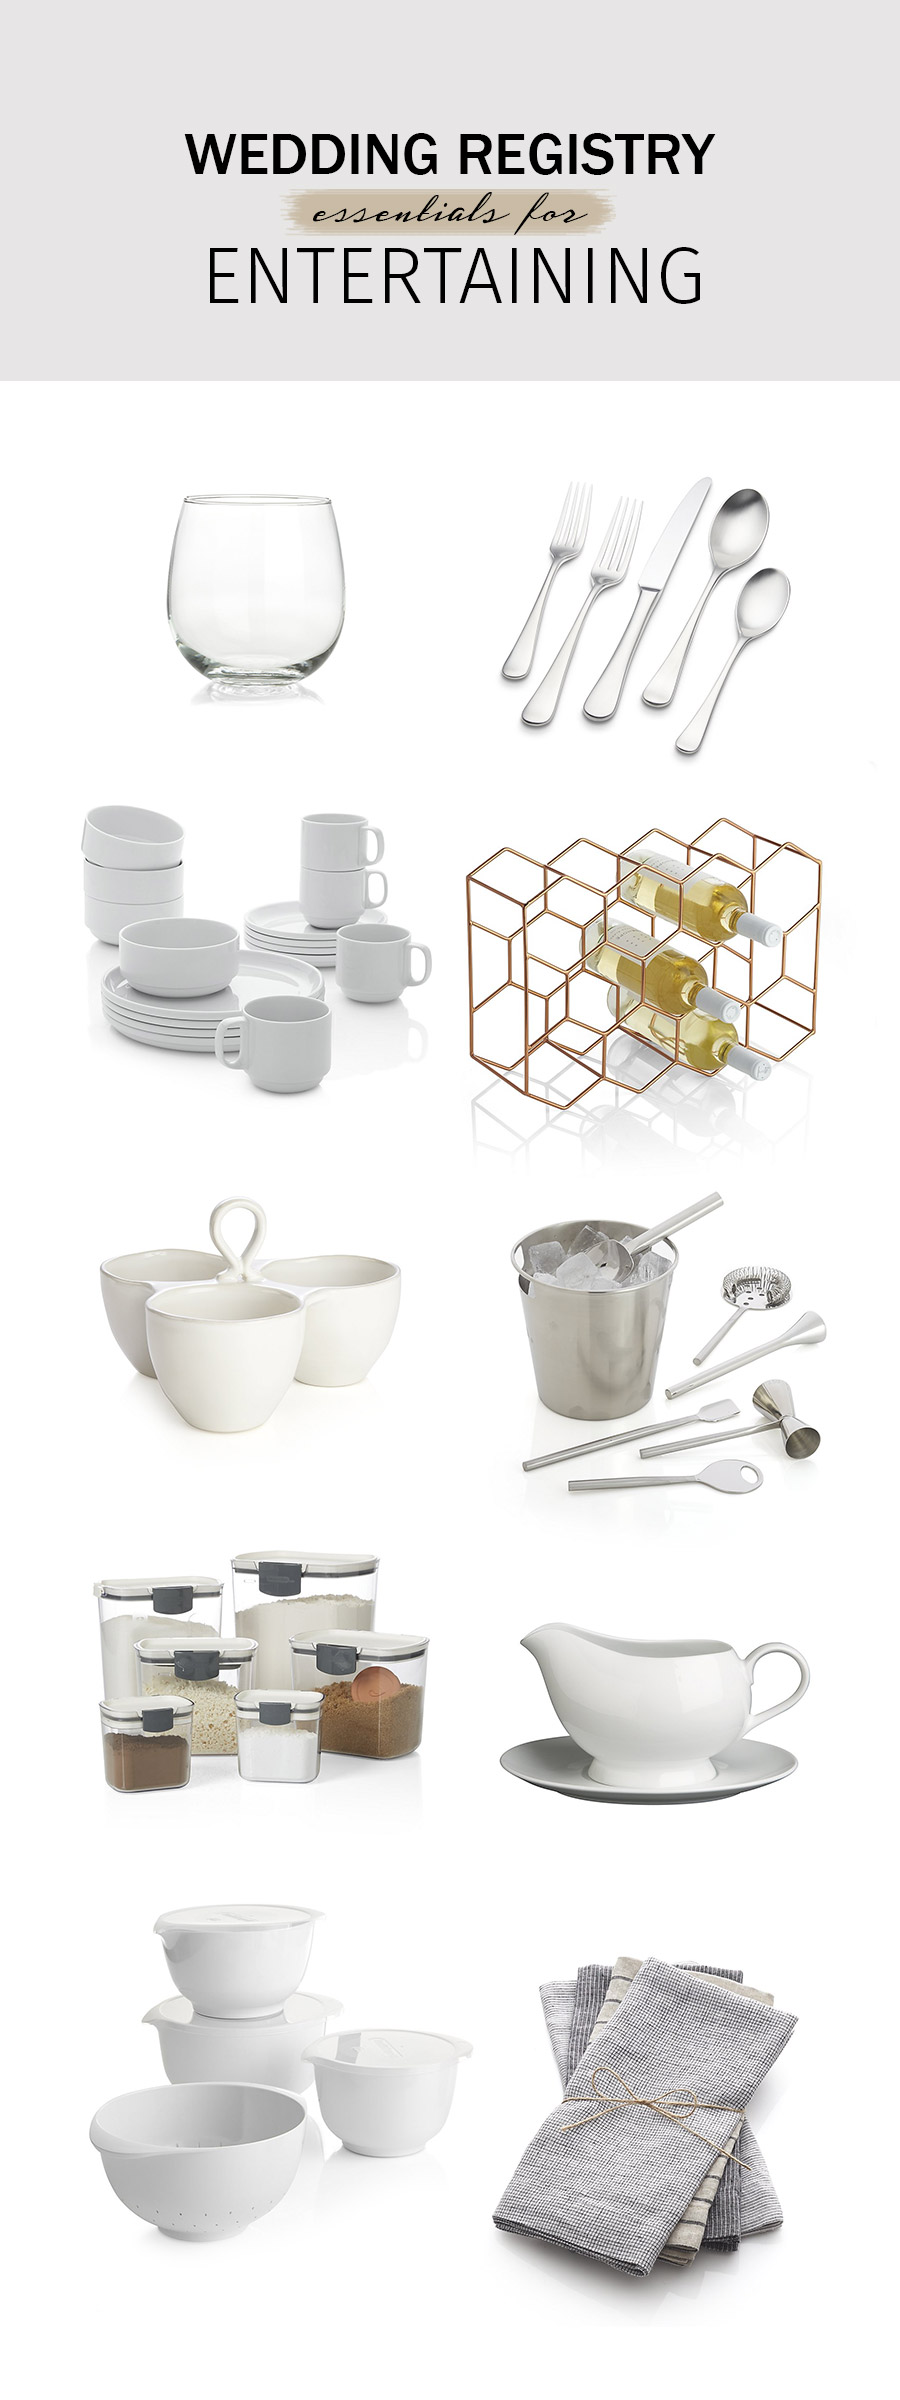 crate and barrel wedding registry ideas 2018 entertaining essentials barware serving mixing prepping tools kitchen